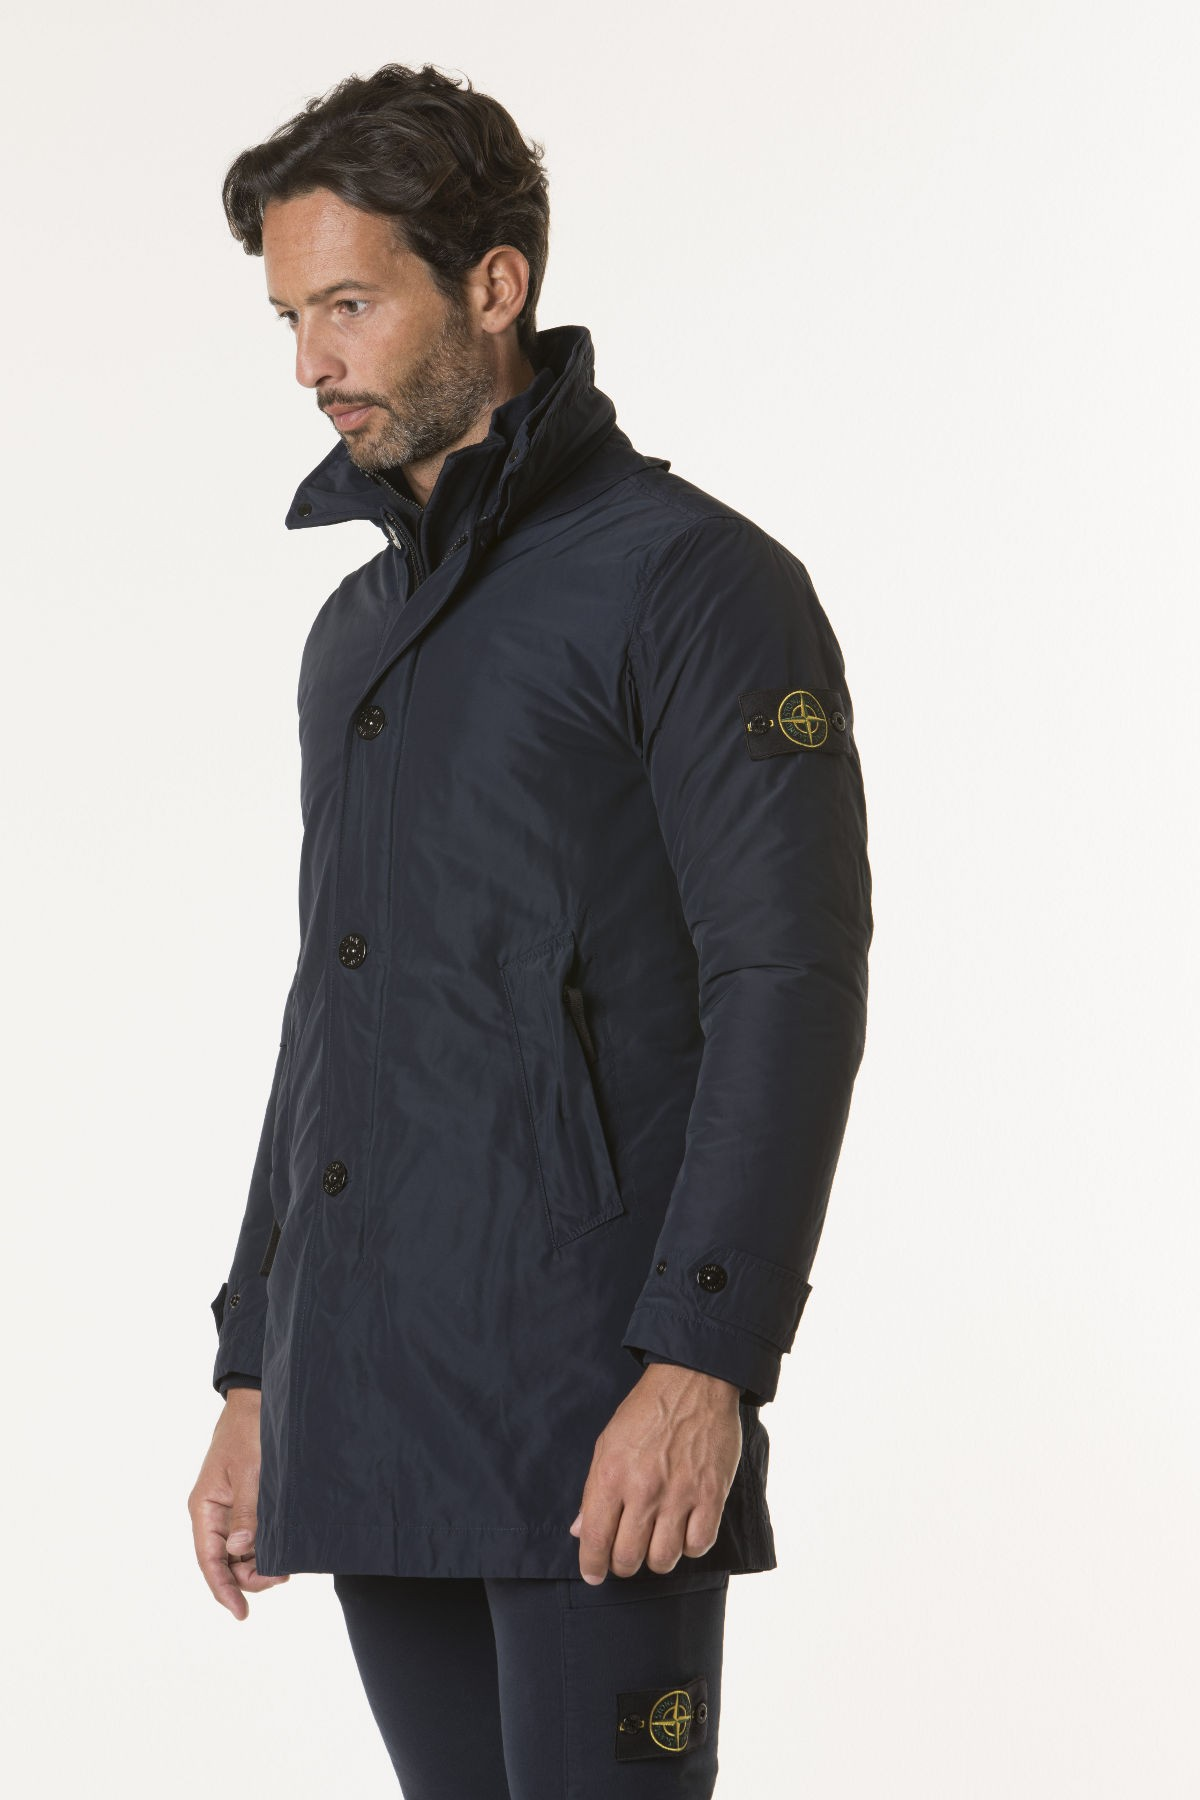 new style 5fede f364f Giubbotto MICRO REPS WITH PRIMALOFT® INSULATION TECHNOLOGY per uomo STONE  ISLAND A/I 17-18